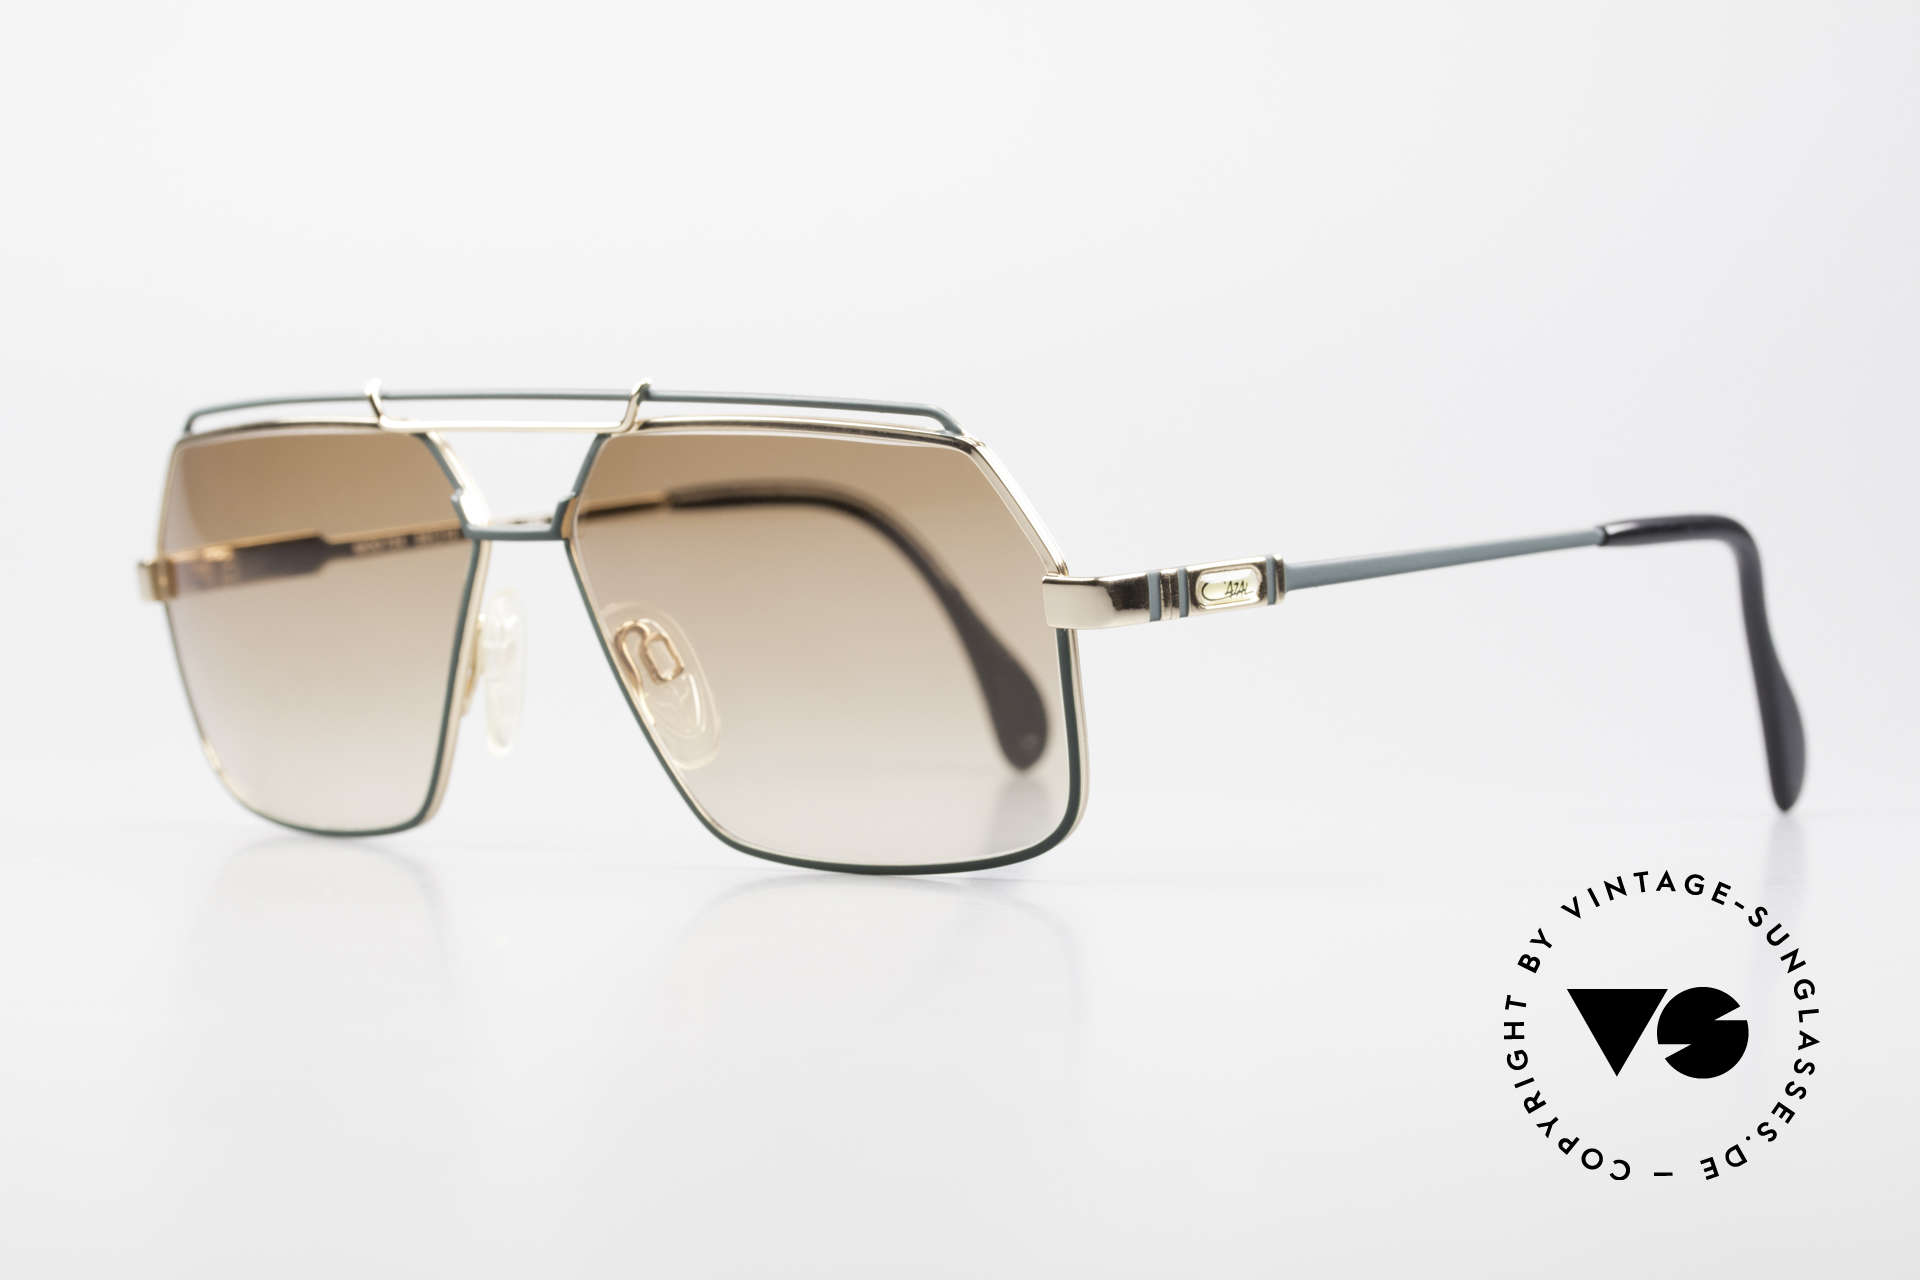 Cazal 734 1980's West Germany Shades, delicate double bridge - suits the real gentleman, Made for Men